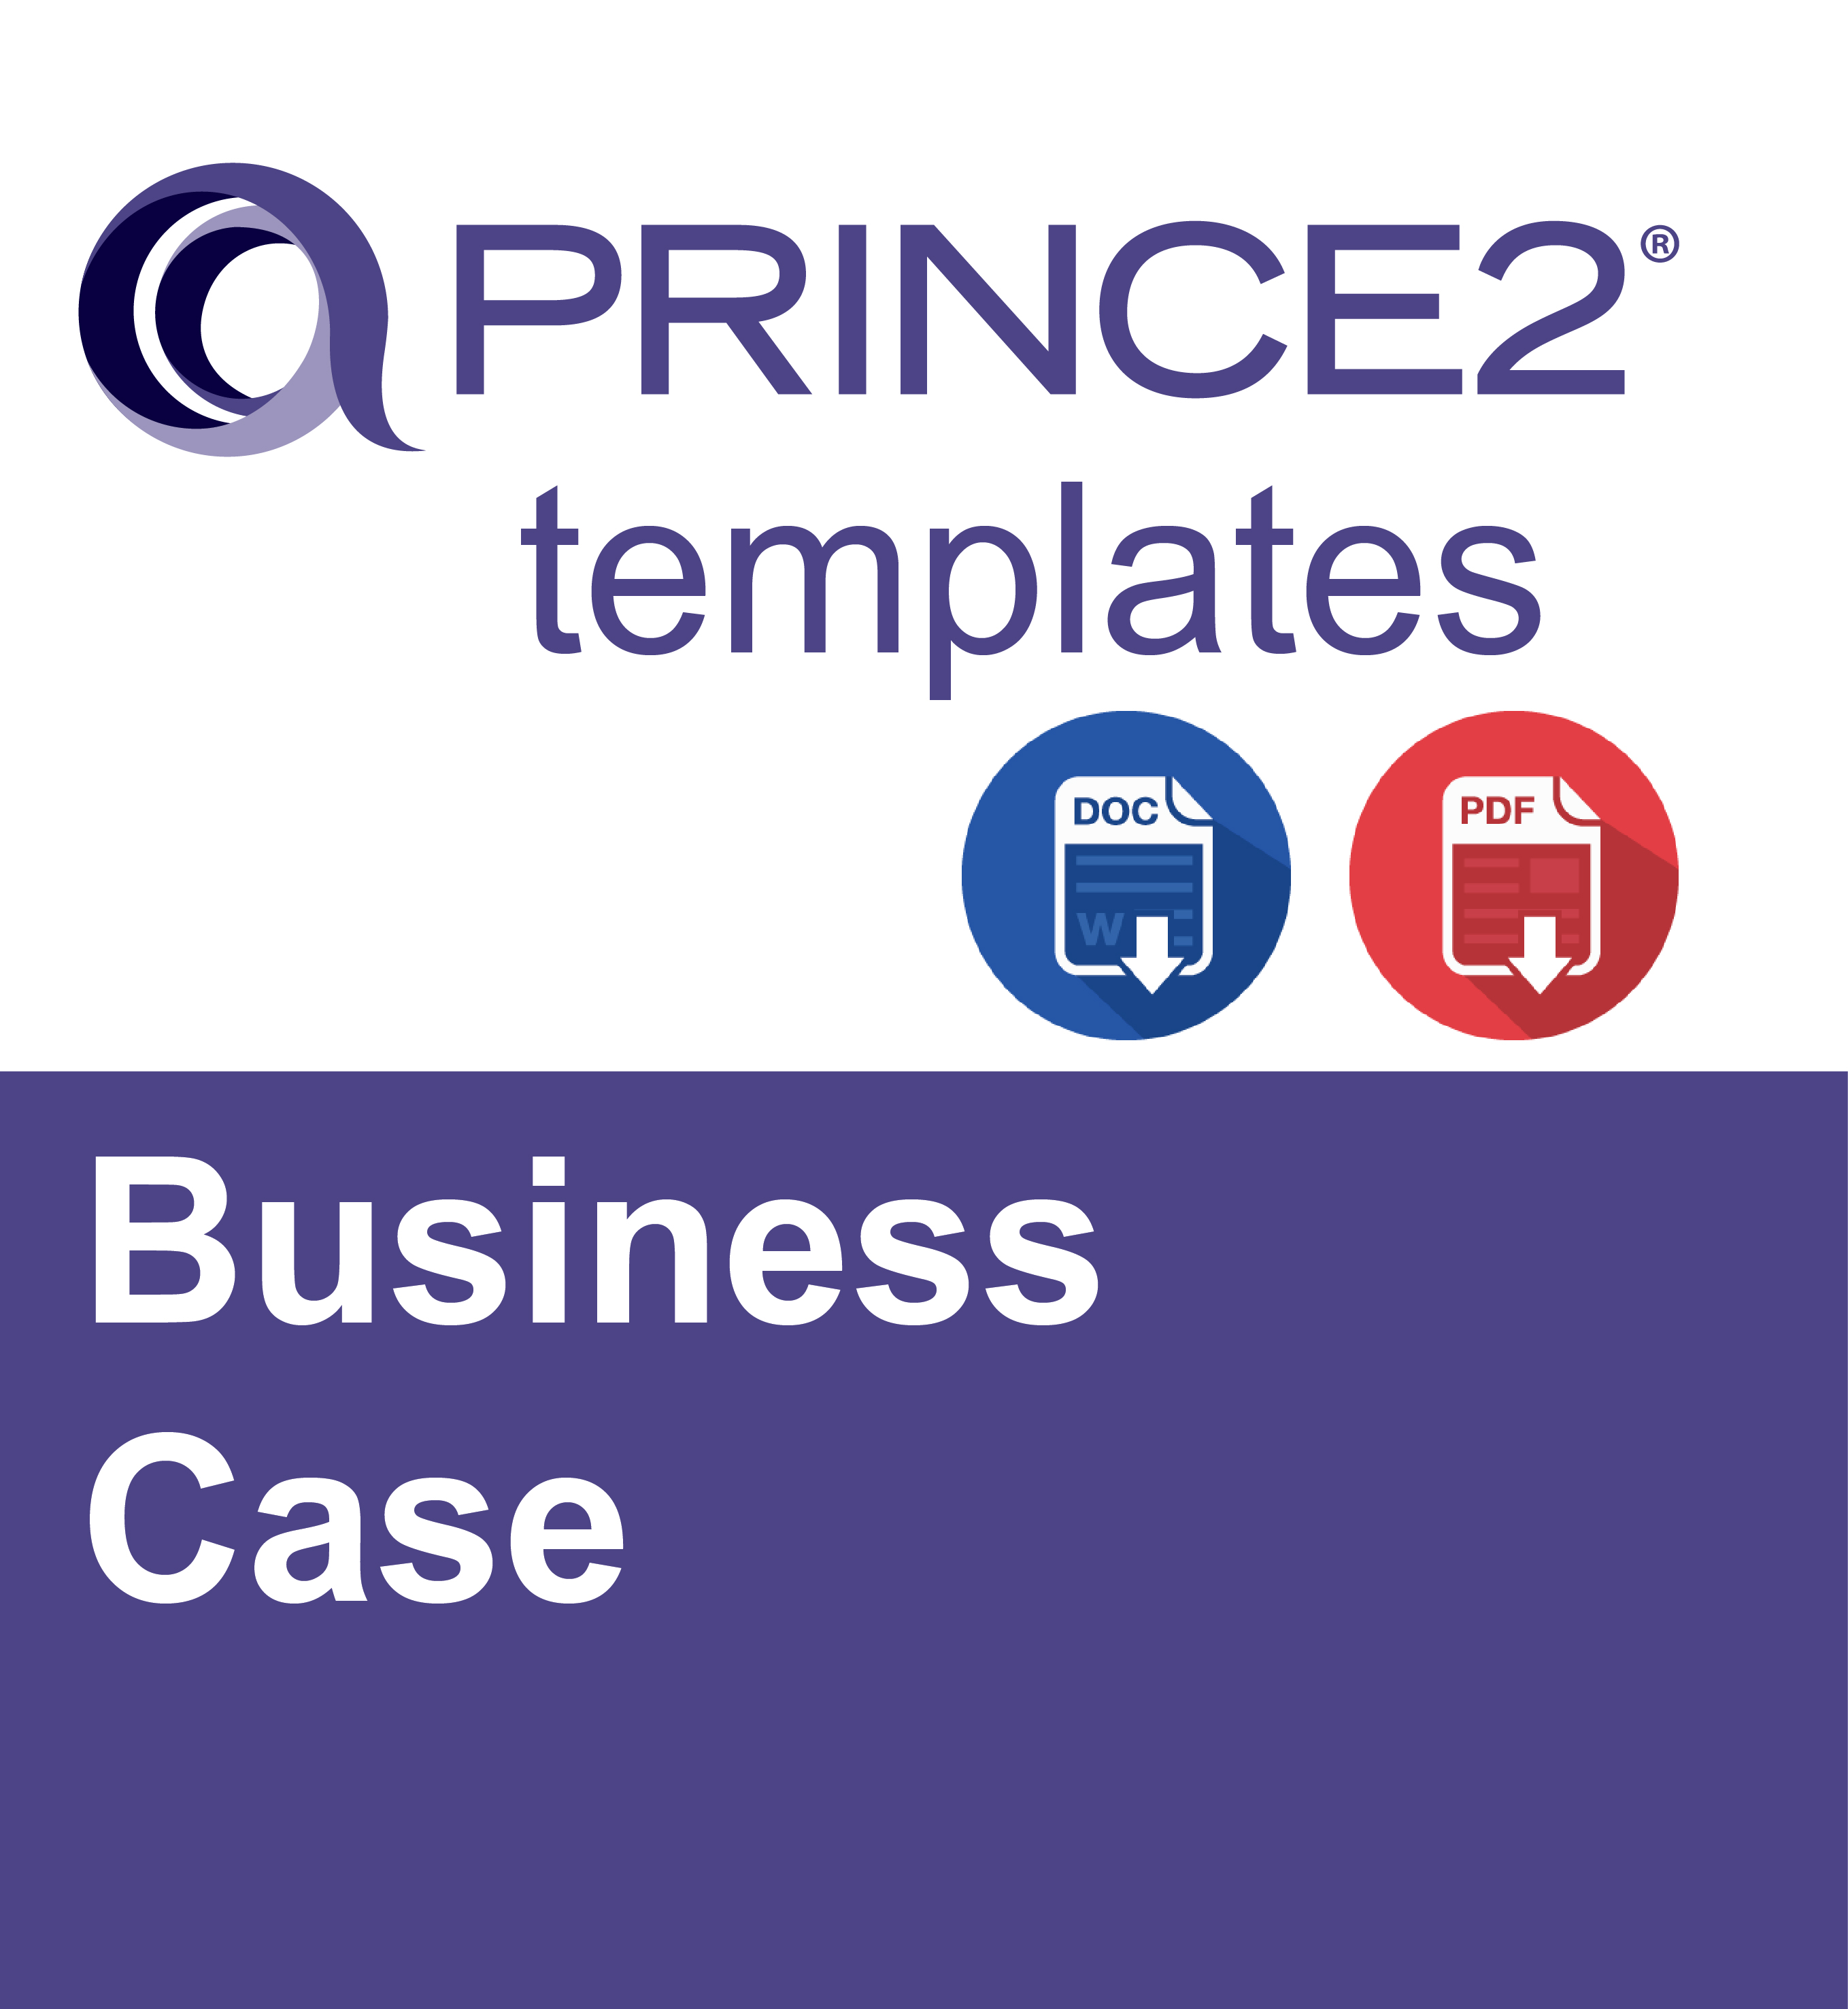 P2-Templates-Business-Case-01.jpg